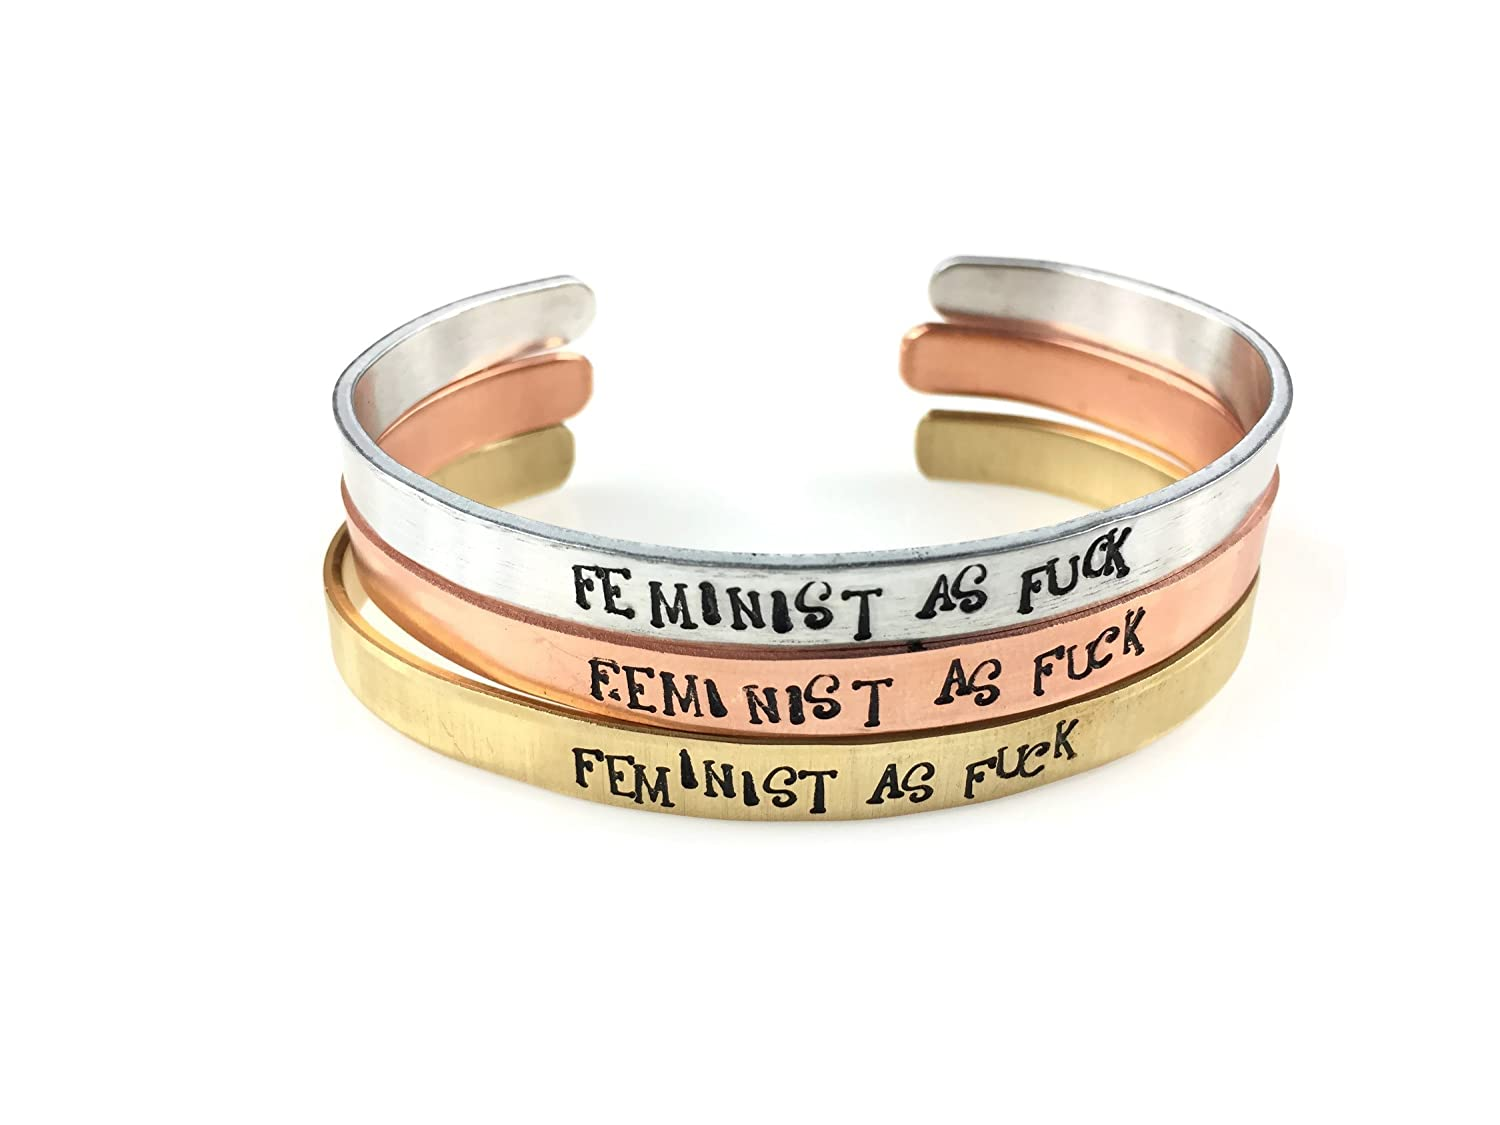 Feminist As Fuck Cuff Bracelet (4 Metal Choices)